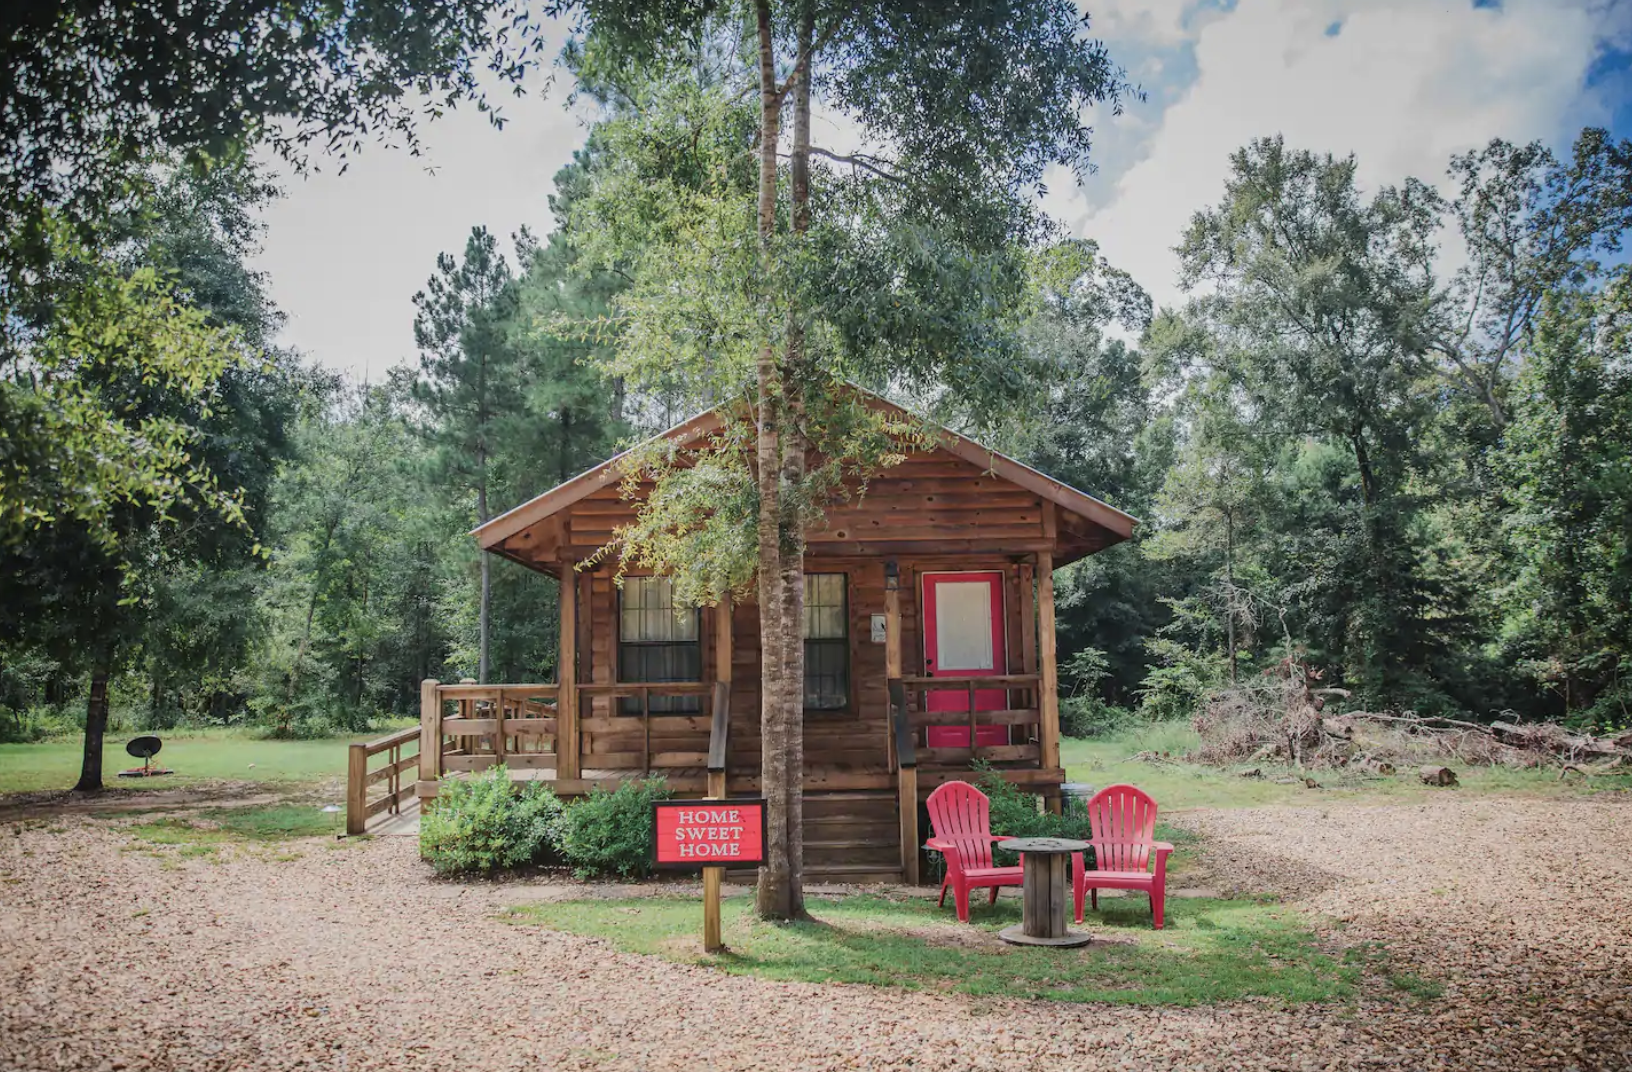 Glamping in Mississippi: Home Sweet Home